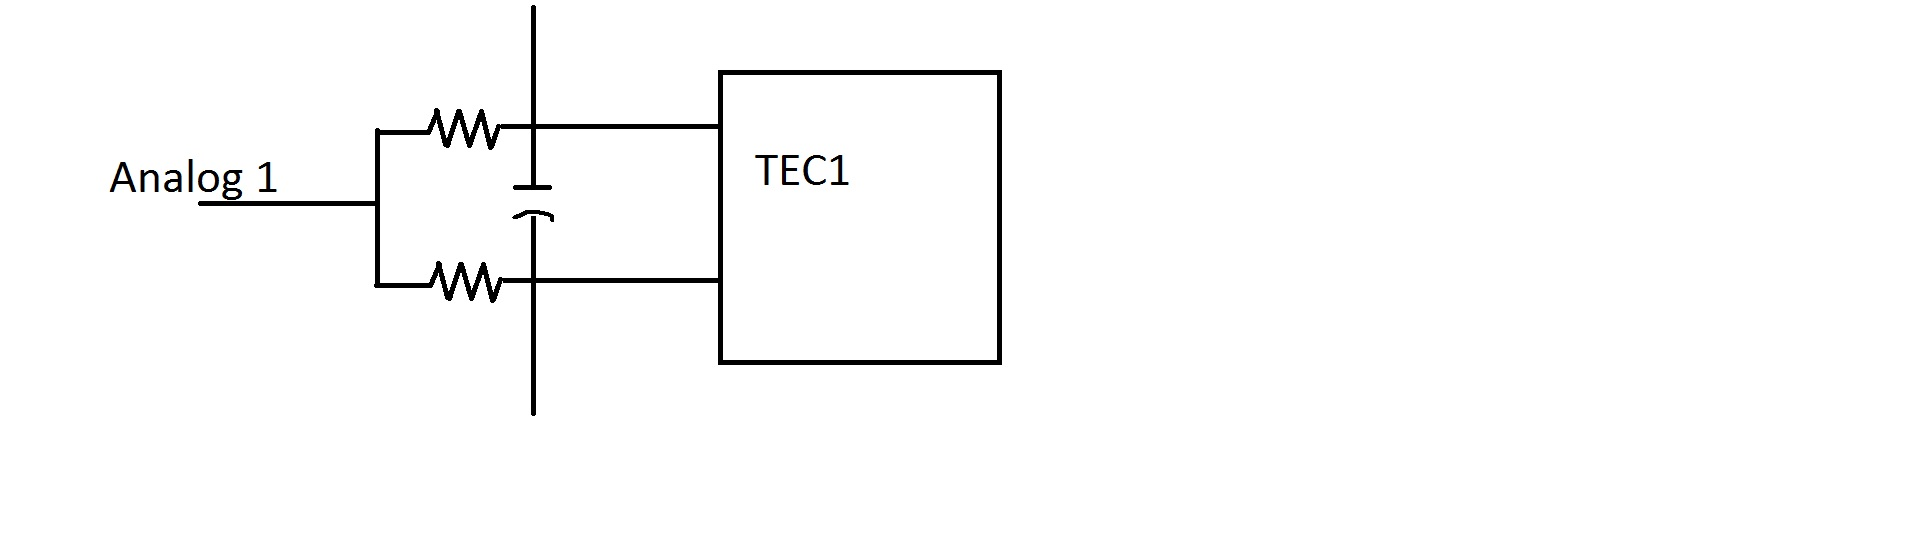 Measuring Floating Voltage Divider Circuit Take The Output Of That And Tie It To An Analog Pin